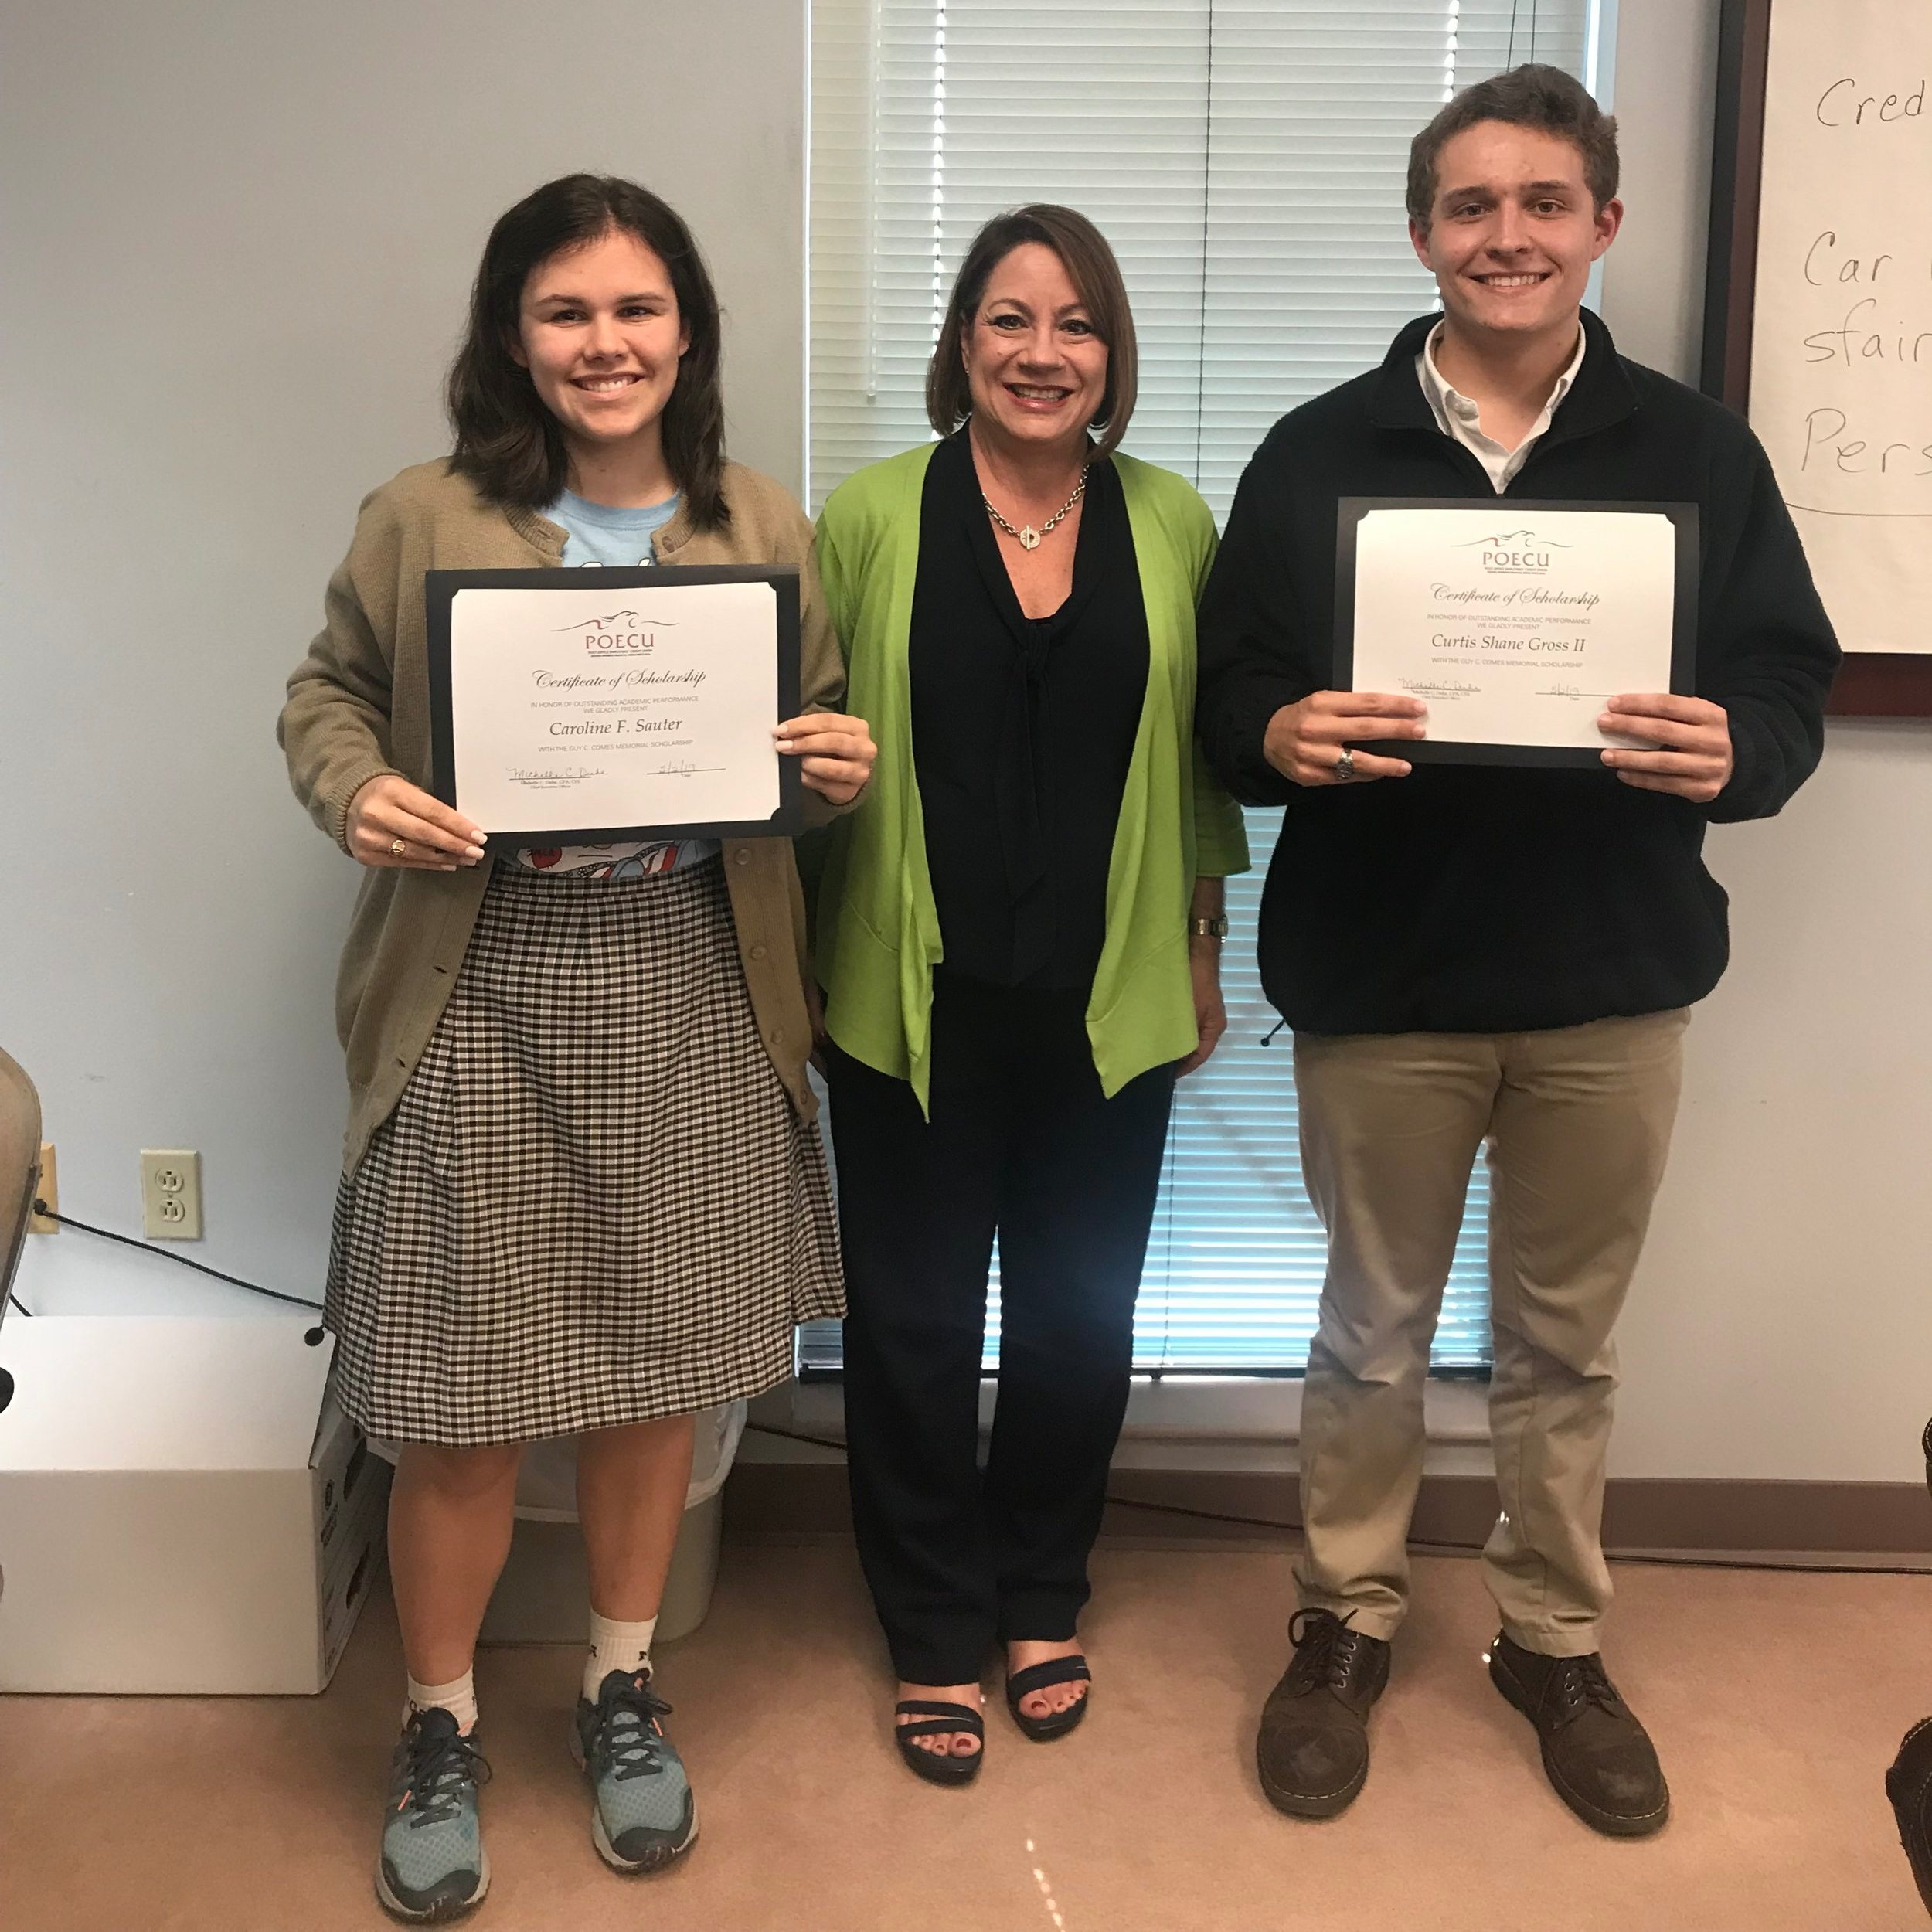 POECU CEO Michelle Duhe (center) presents Caroline Sauter (left) and Shane Gross (right) with the 2019 Guy C. Comes Scholarship.